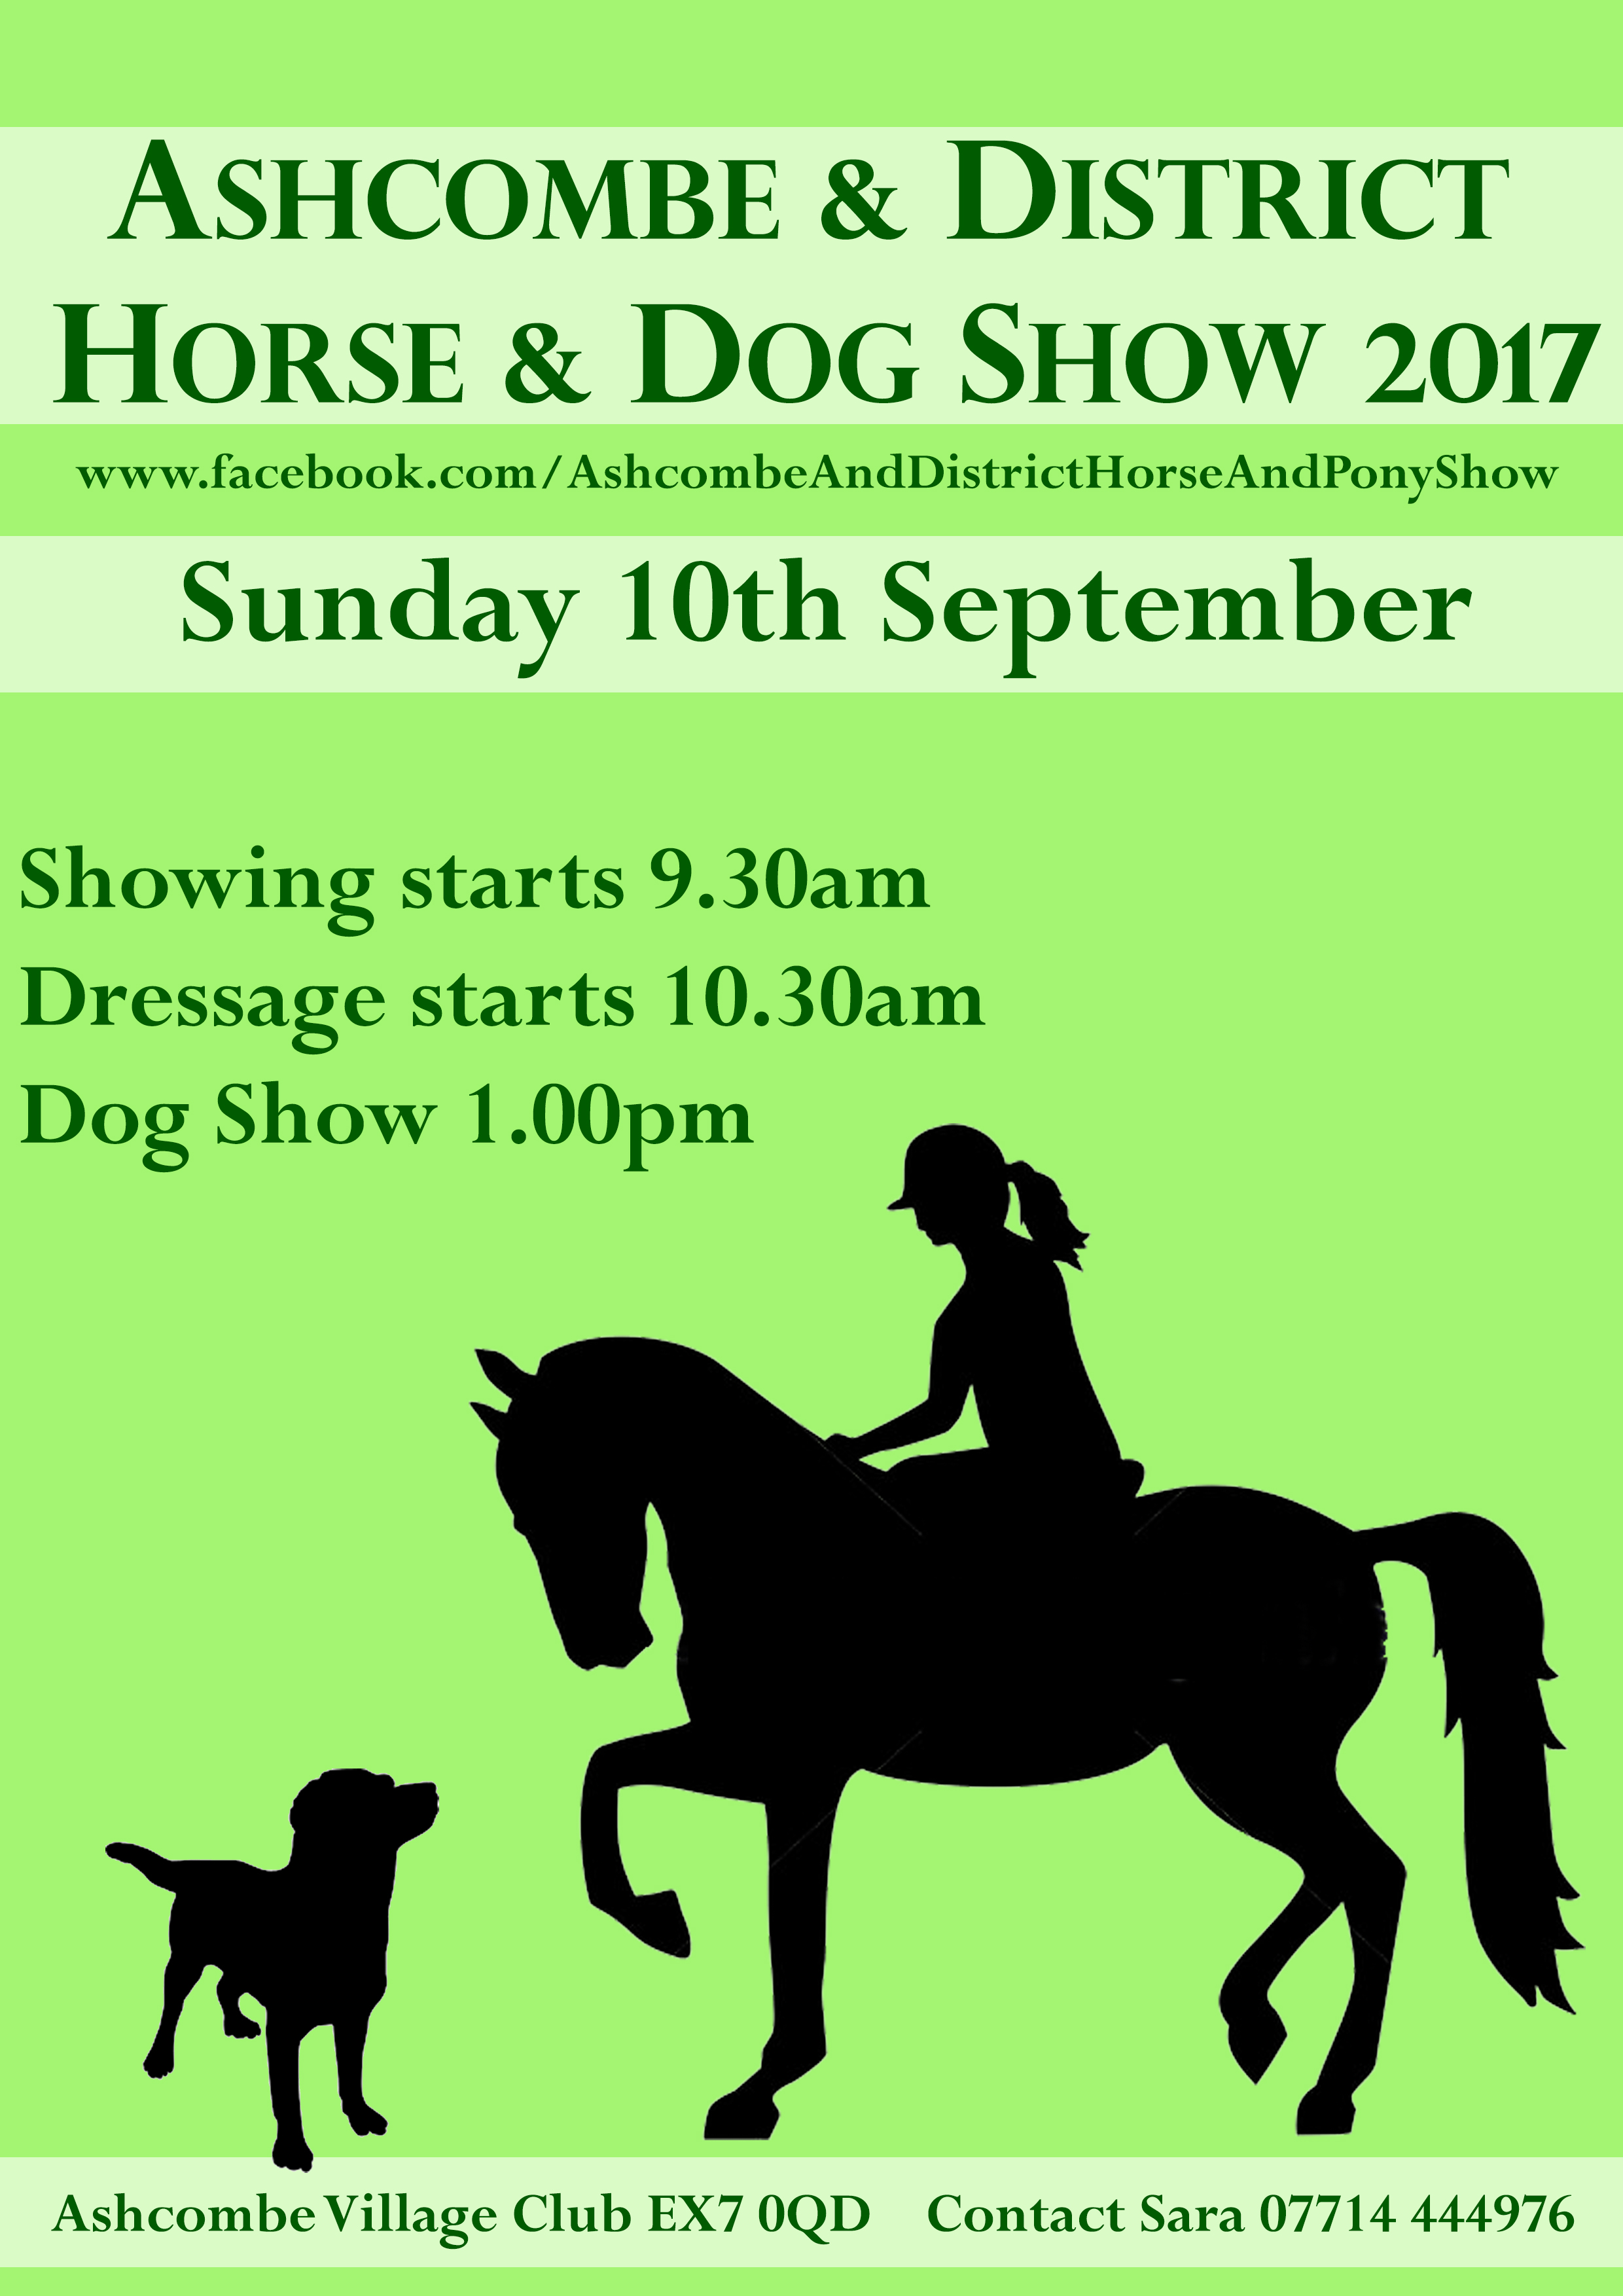 Horse and dog show